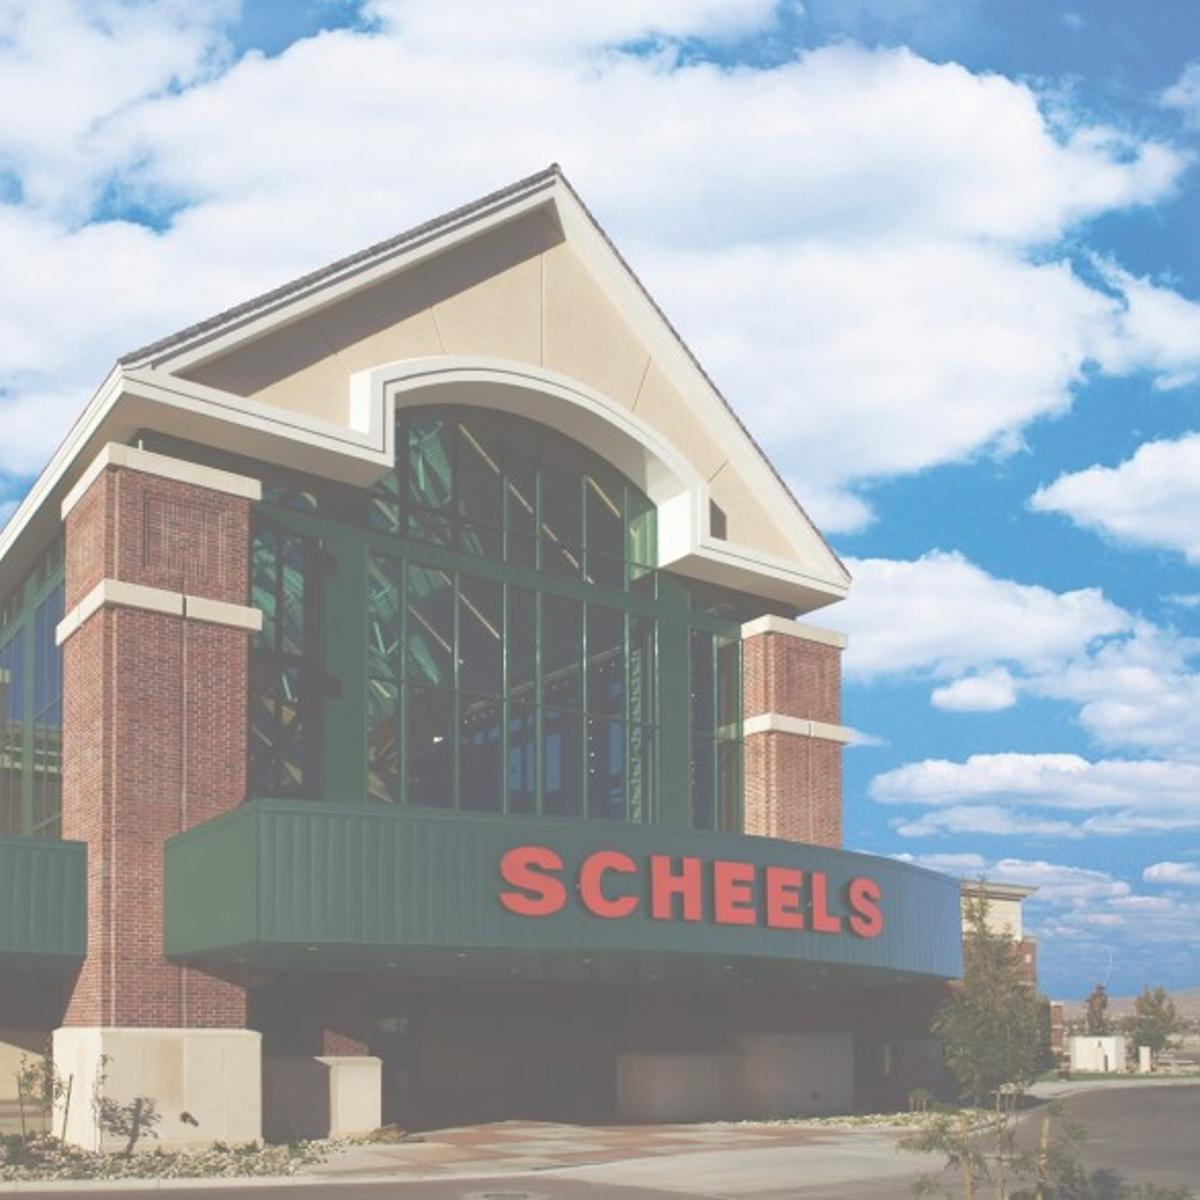 New 220,000-square-foot Scheels will be the largest stand